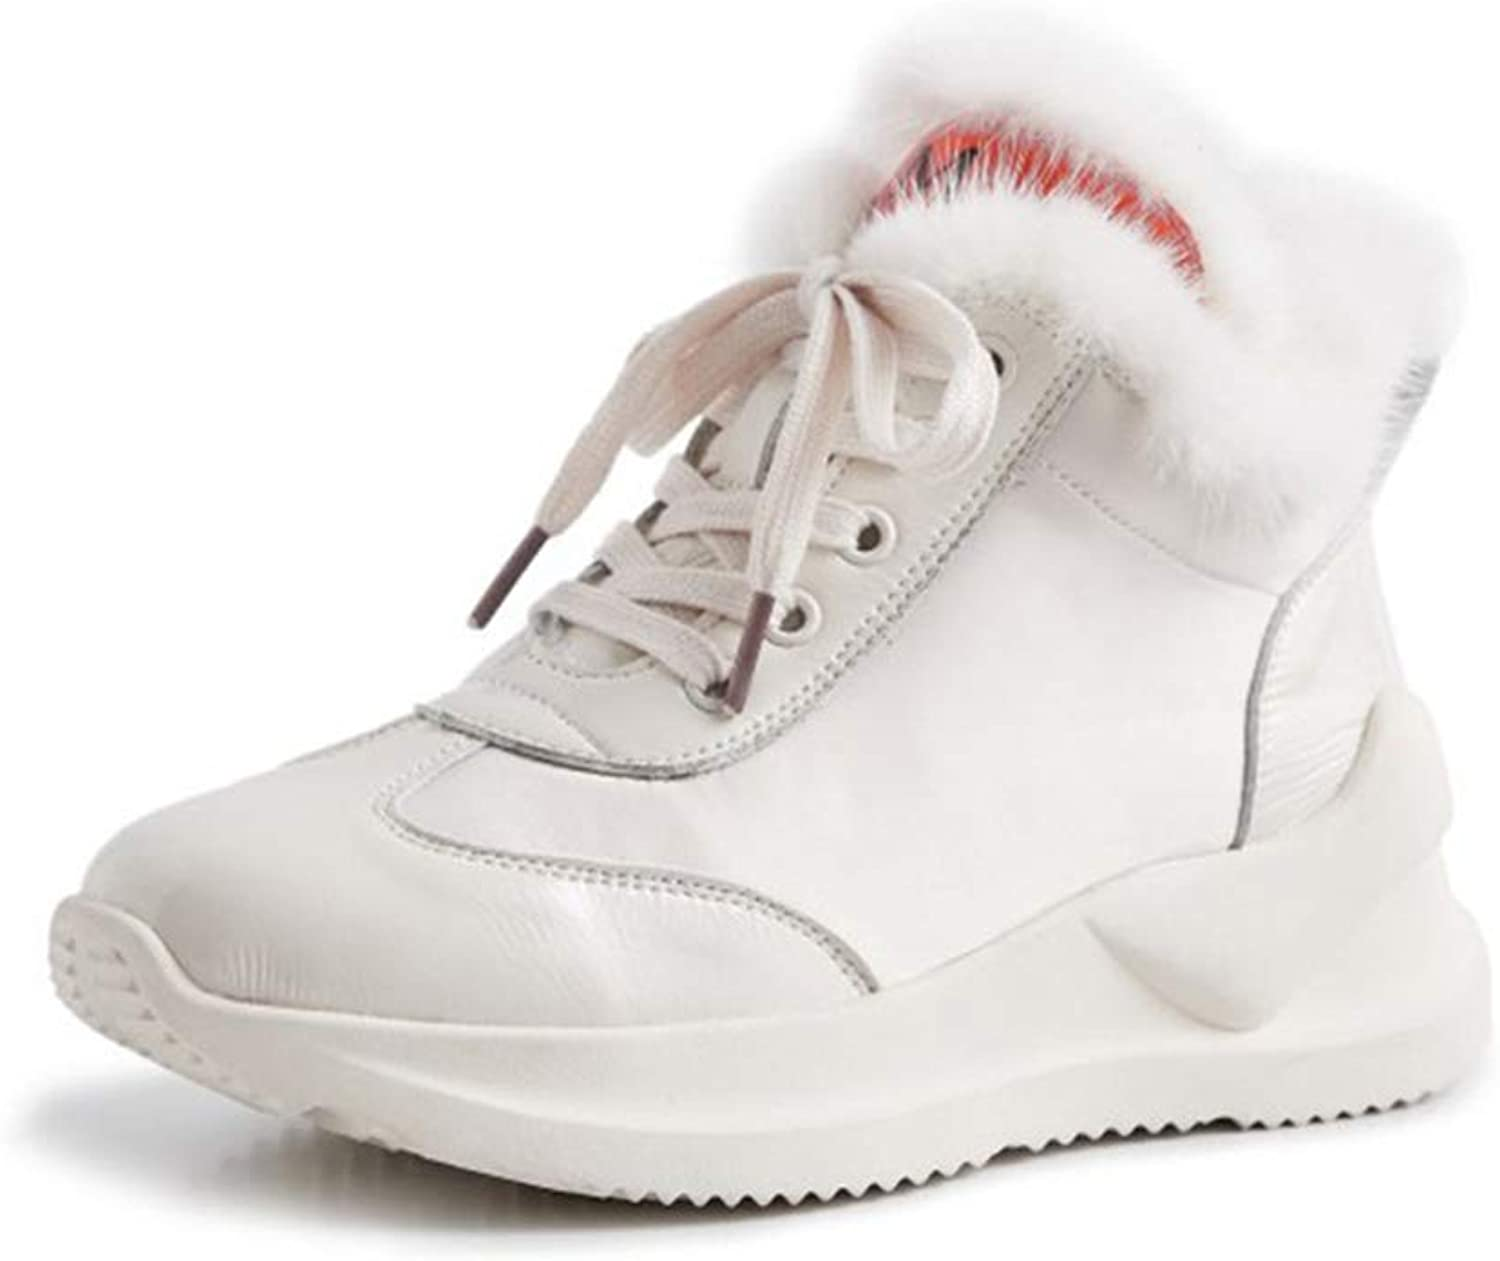 Womens Ankle Boots Winter Warm Ladies Snow Boot Anti Slip Casual shoes Flat Heel Short Boots Trainers shoes Outdoor Walking shoes (color   White, Size   35)